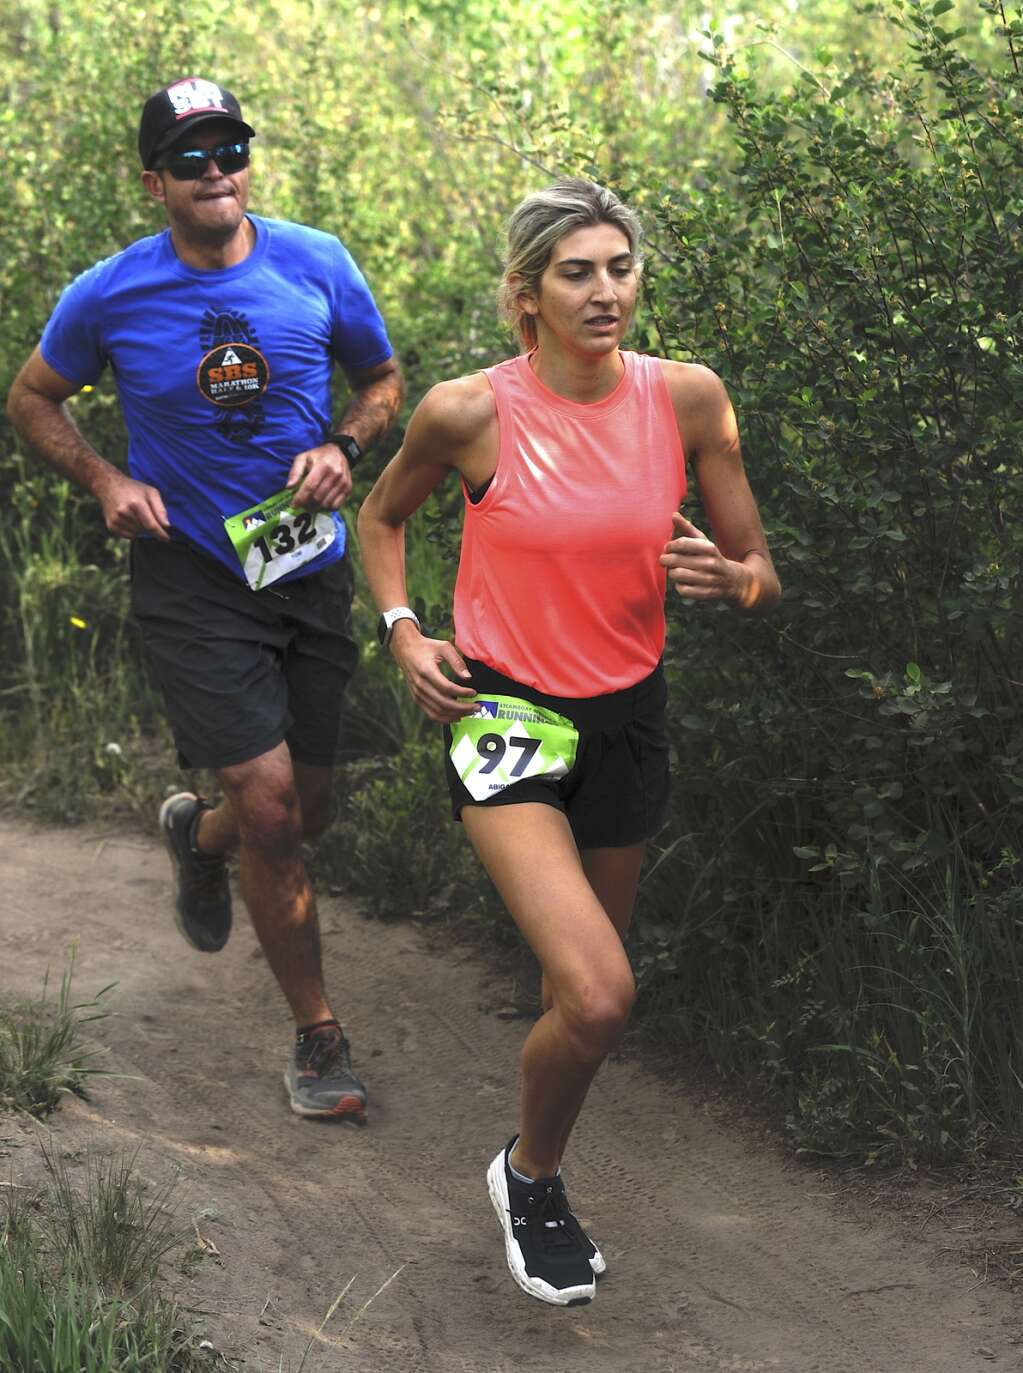 Tom Krabacher and Abigail Cosenza compete in the Steamboat Springs Running Series Howelsen Hill Trail Run on Saturday morning. (Photo by Shelby Reardon)